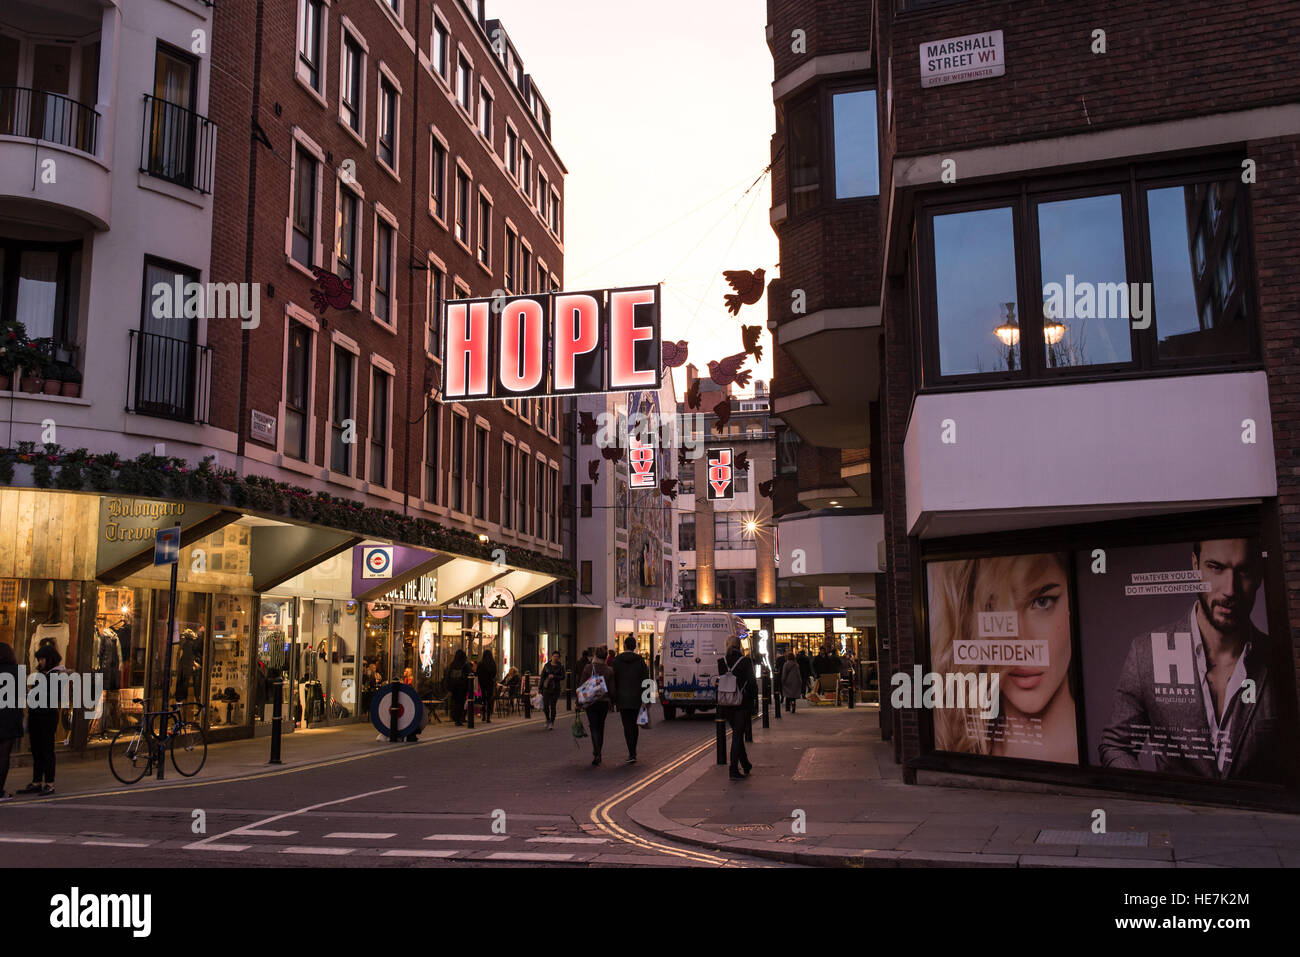 Street view of Broadwick street from Marshall street before entering in Carnaby street with big Christmas light - Stock Image